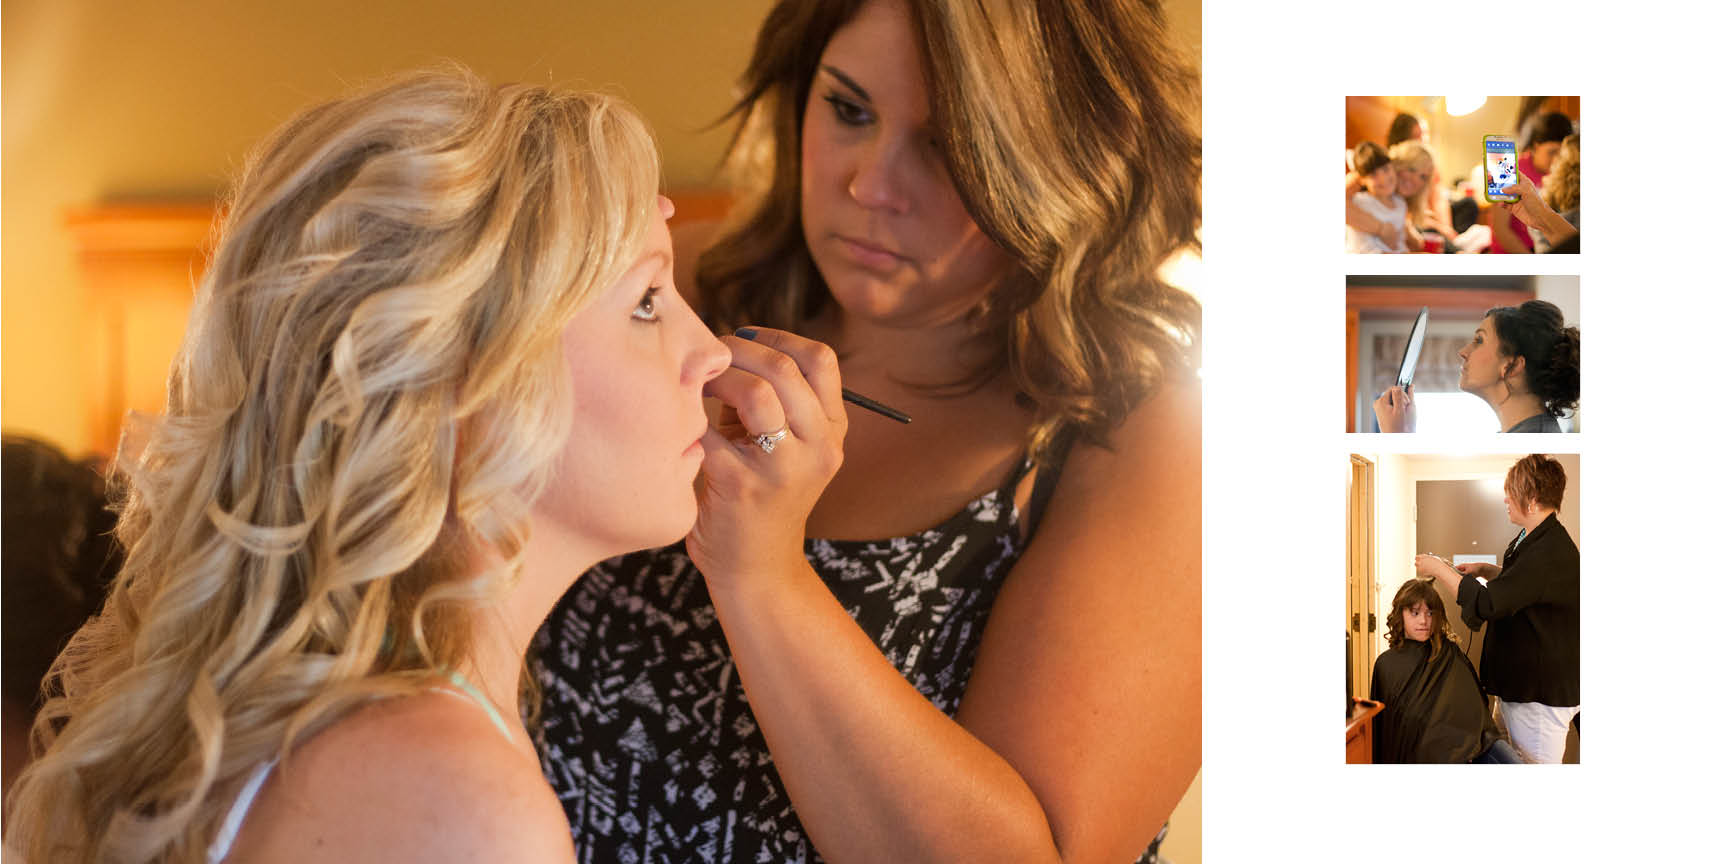 Bride and bridesmaids getting ready at the hotel.